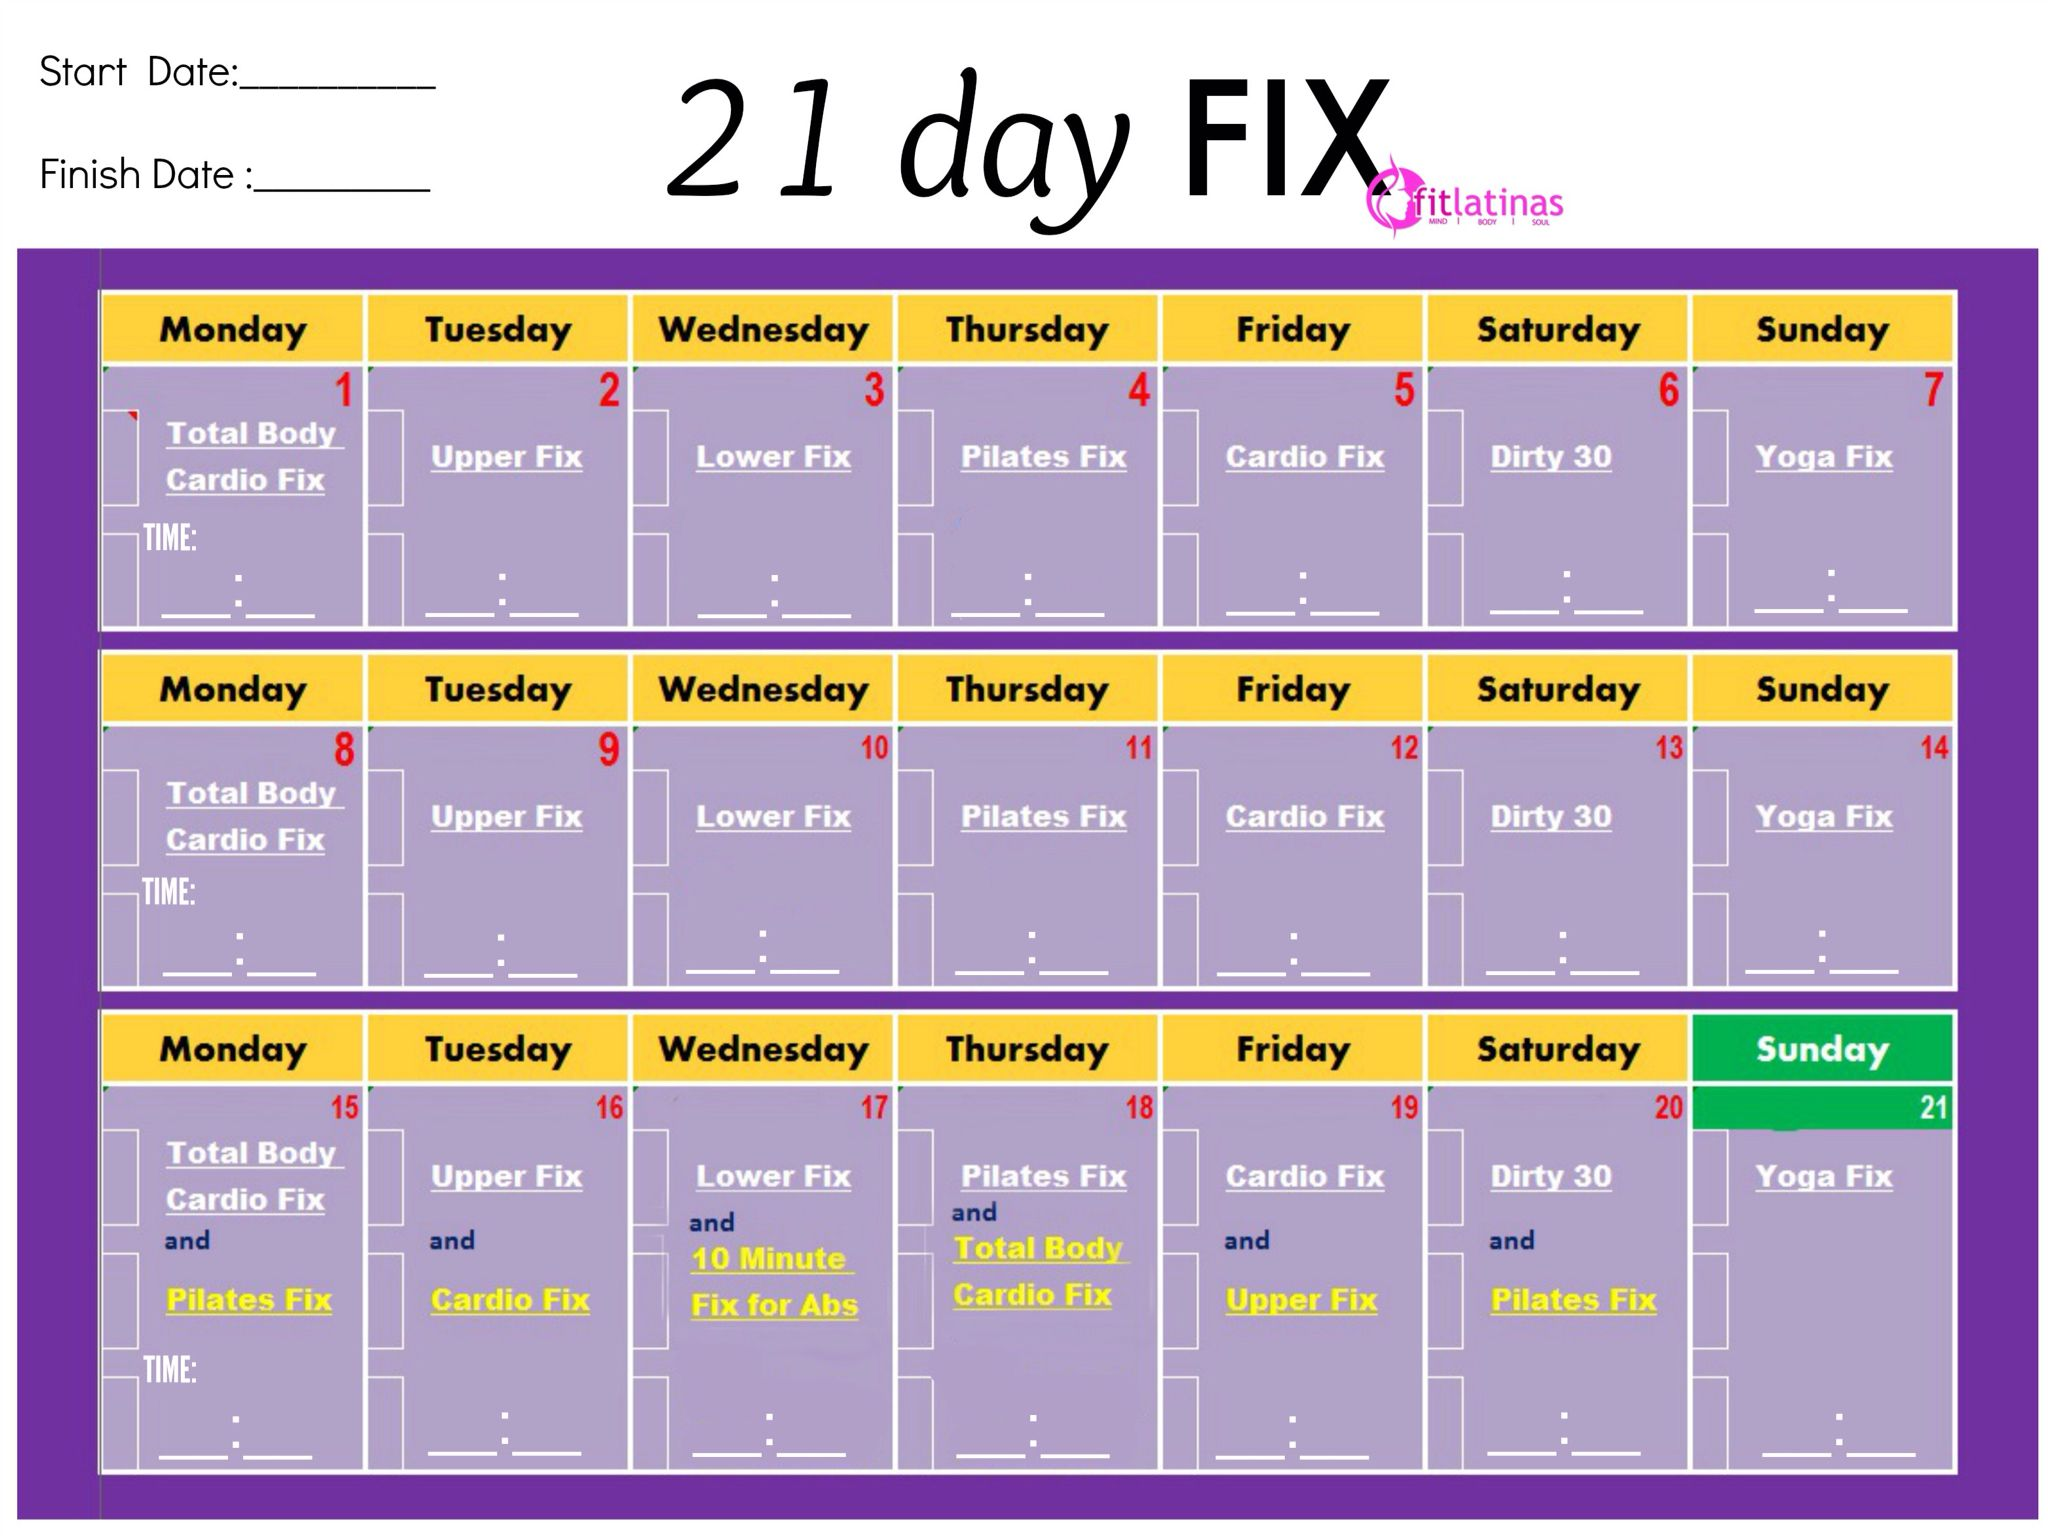 picture relating to 21 Day Fix Workout Schedule Printable referred to as A different uncomplicated printable chart Exercise 21 working day mend workout routines